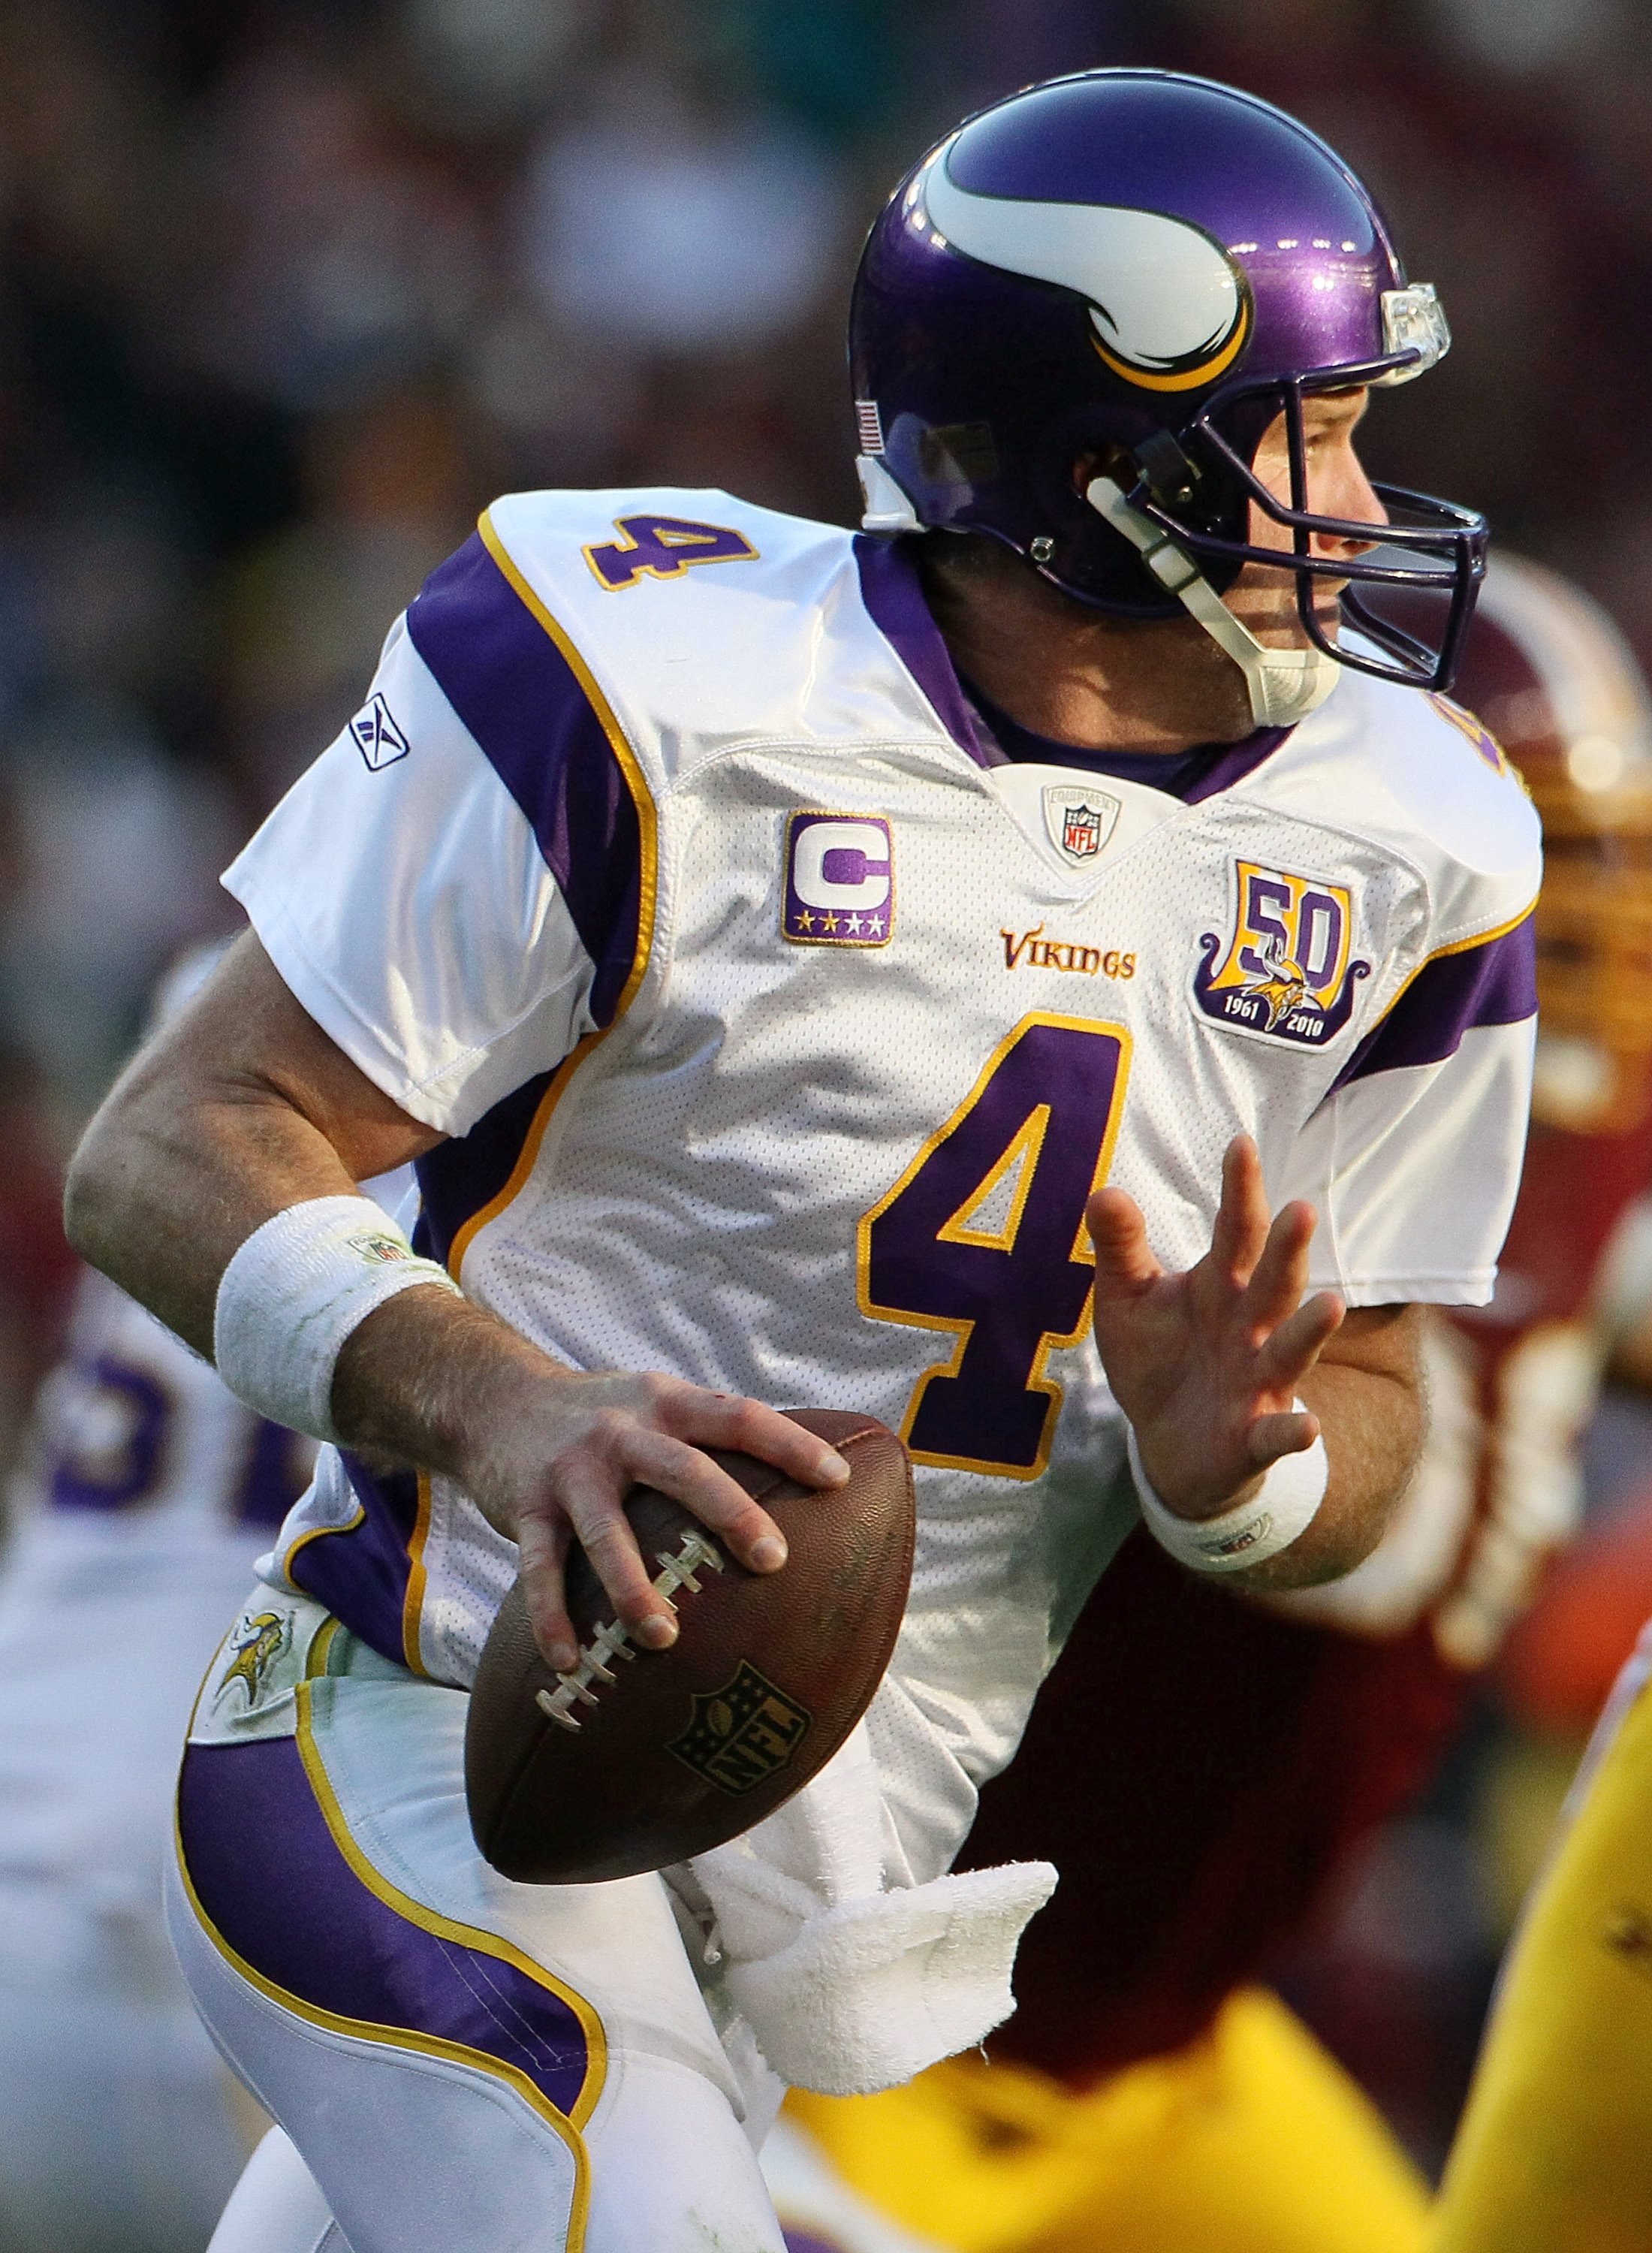 LANDOVER, MD - NOVEMBER 28:  Brett Favre #4 of the Minnesota Vikings scrambles against the Washington Redskins at FedExField November 28, 2010 in Landover, Maryland. The Vikings won the game 17-13.  (Photo by Win McNamee/Getty Images)